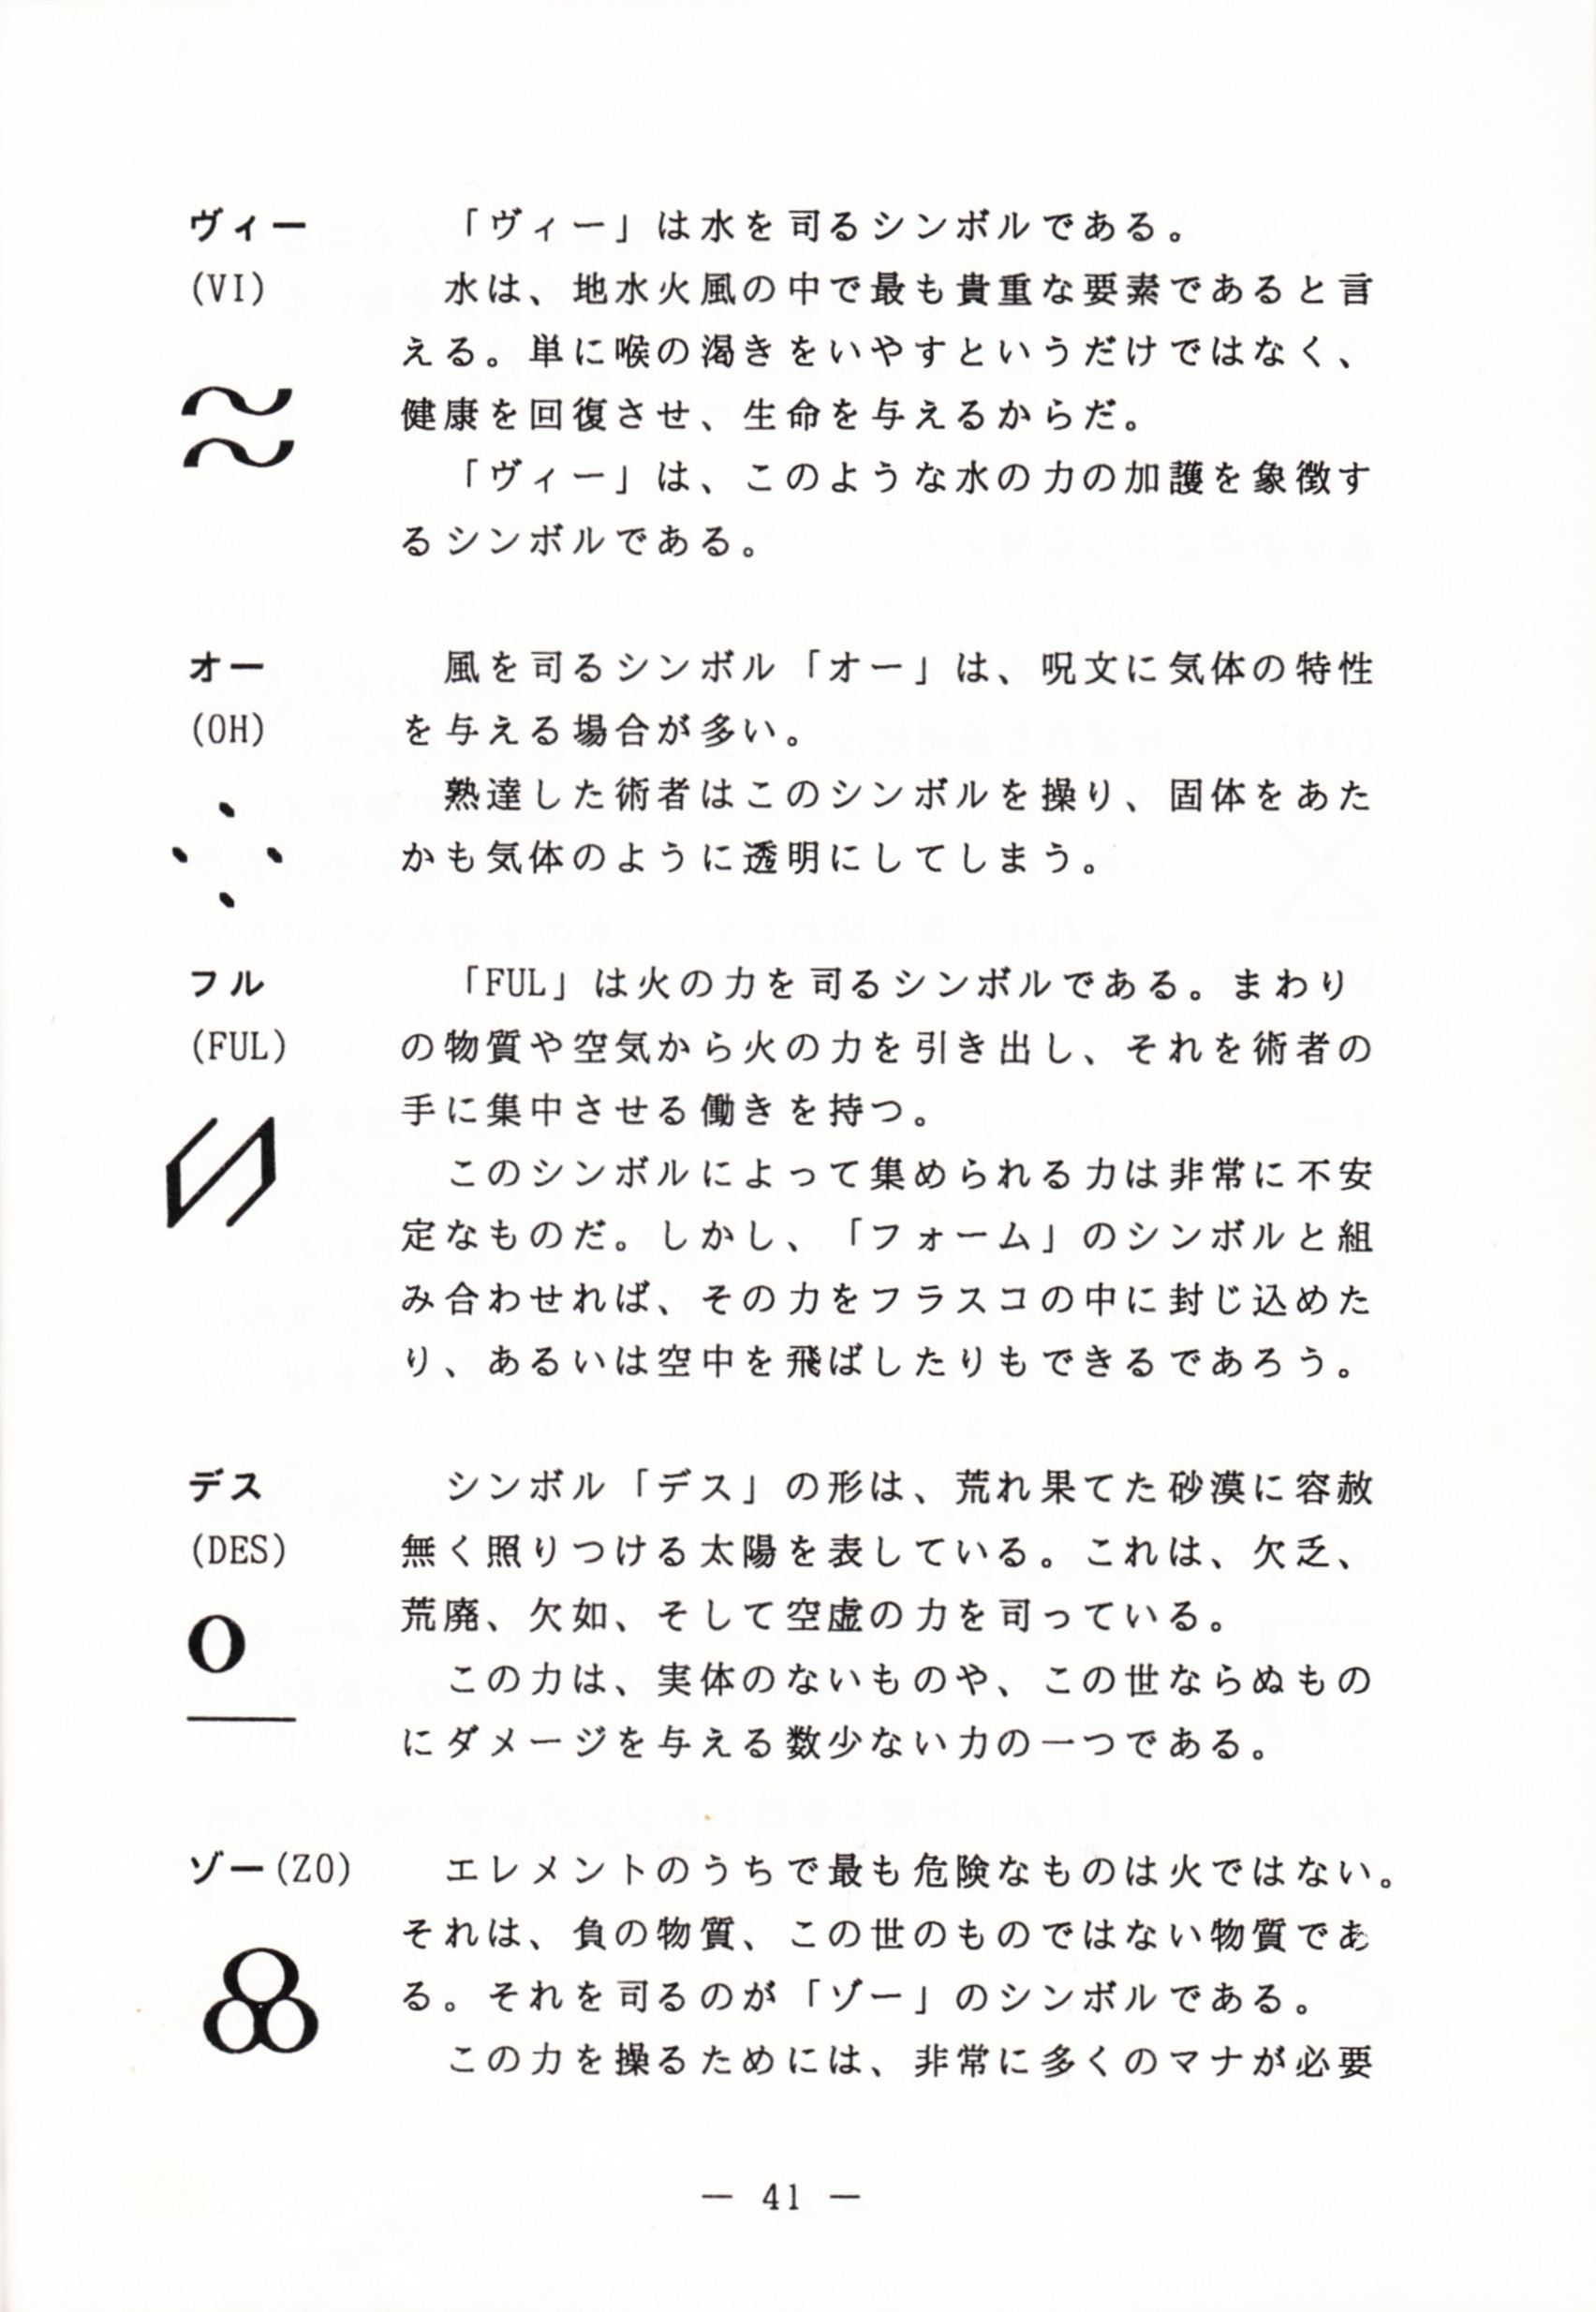 Game - Dungeon Master - JP - FM Towns - Operations Guide - Page 043 - Scan